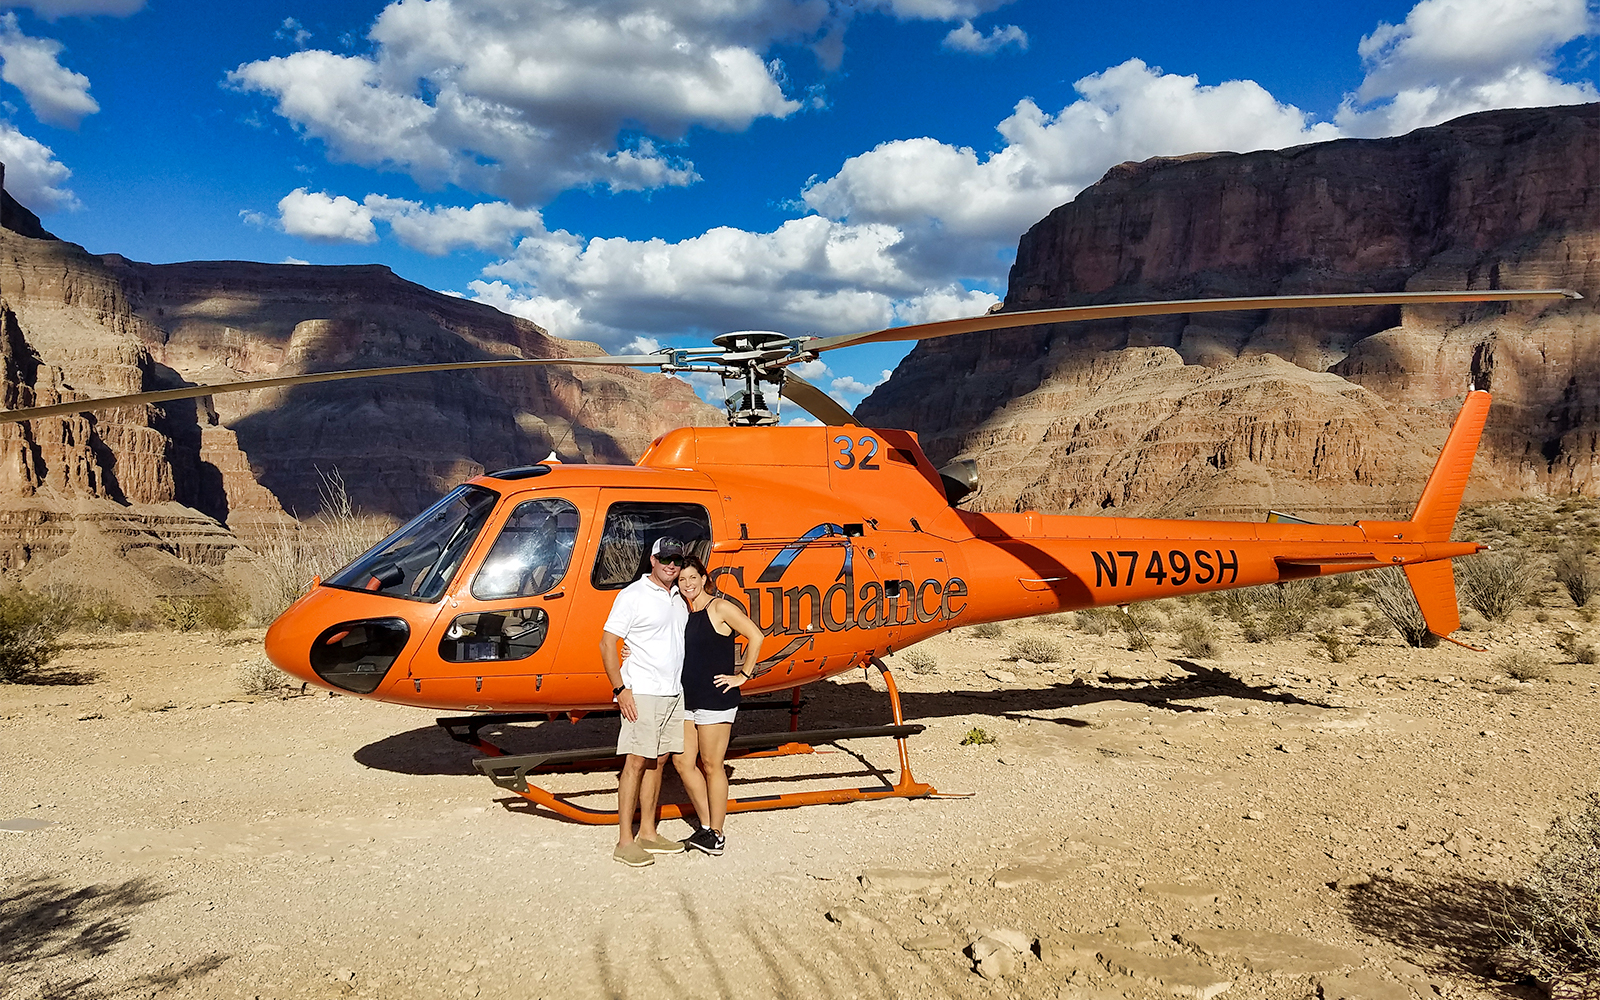 81444ec2 5879 48f3 91ad 497764063ef4 11597 grand canyon grand canyon helicopter tour with floor landing   flight over lv strip 04